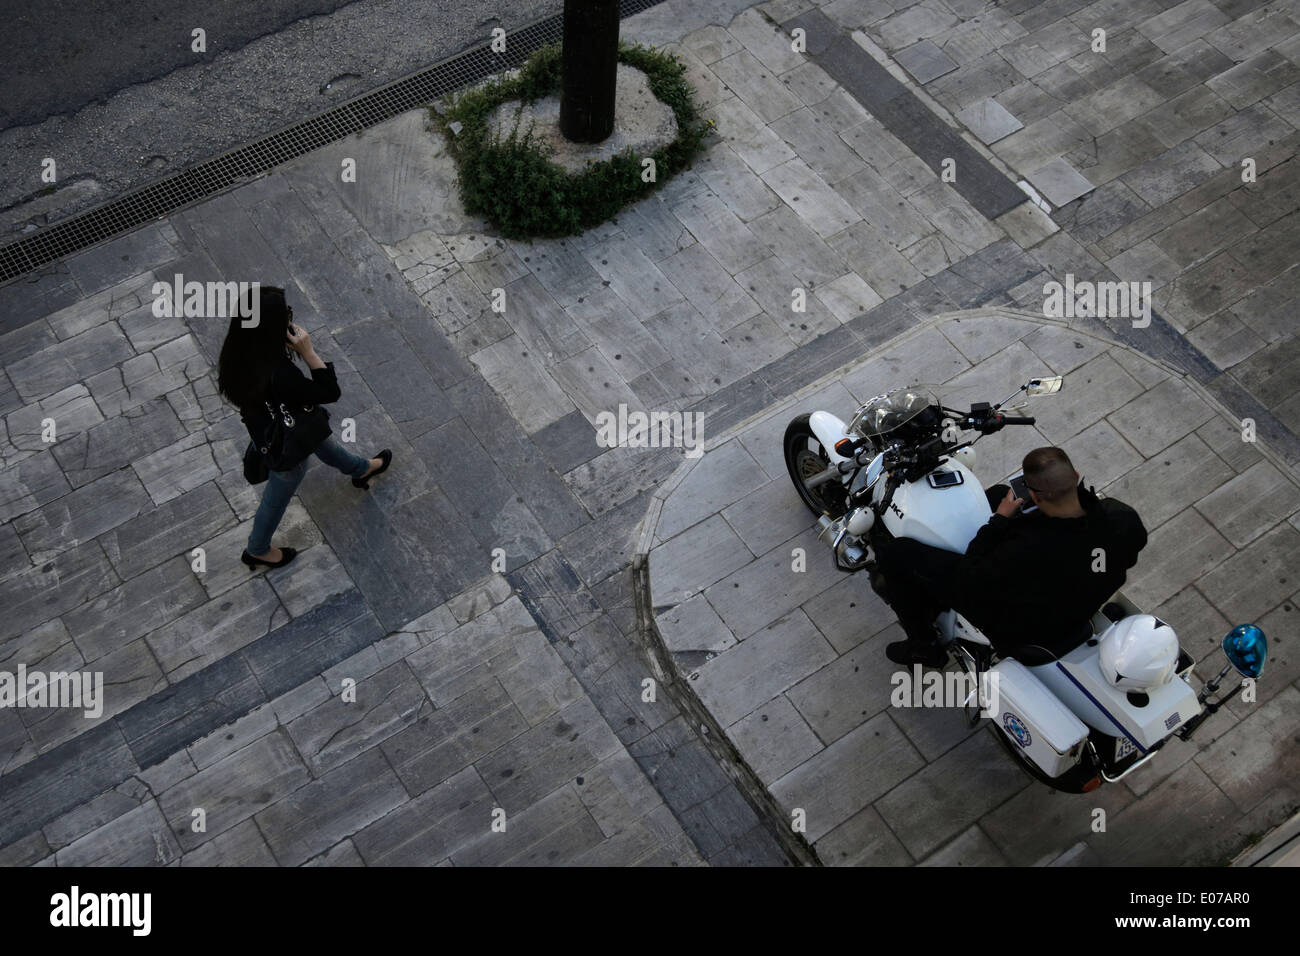 Athens, Greece. 5th May 2014. A woman walks past a police officer outside of the Athens Supreme court. Golden Dawn MPs were invited by the Special Appellate magistrate, to account for the category of membership and directing a criminal organization. Athens, Greece on May 5, 2014. Credit:  Konstantinos Tsakalidis/Alamy Live News - Stock Image